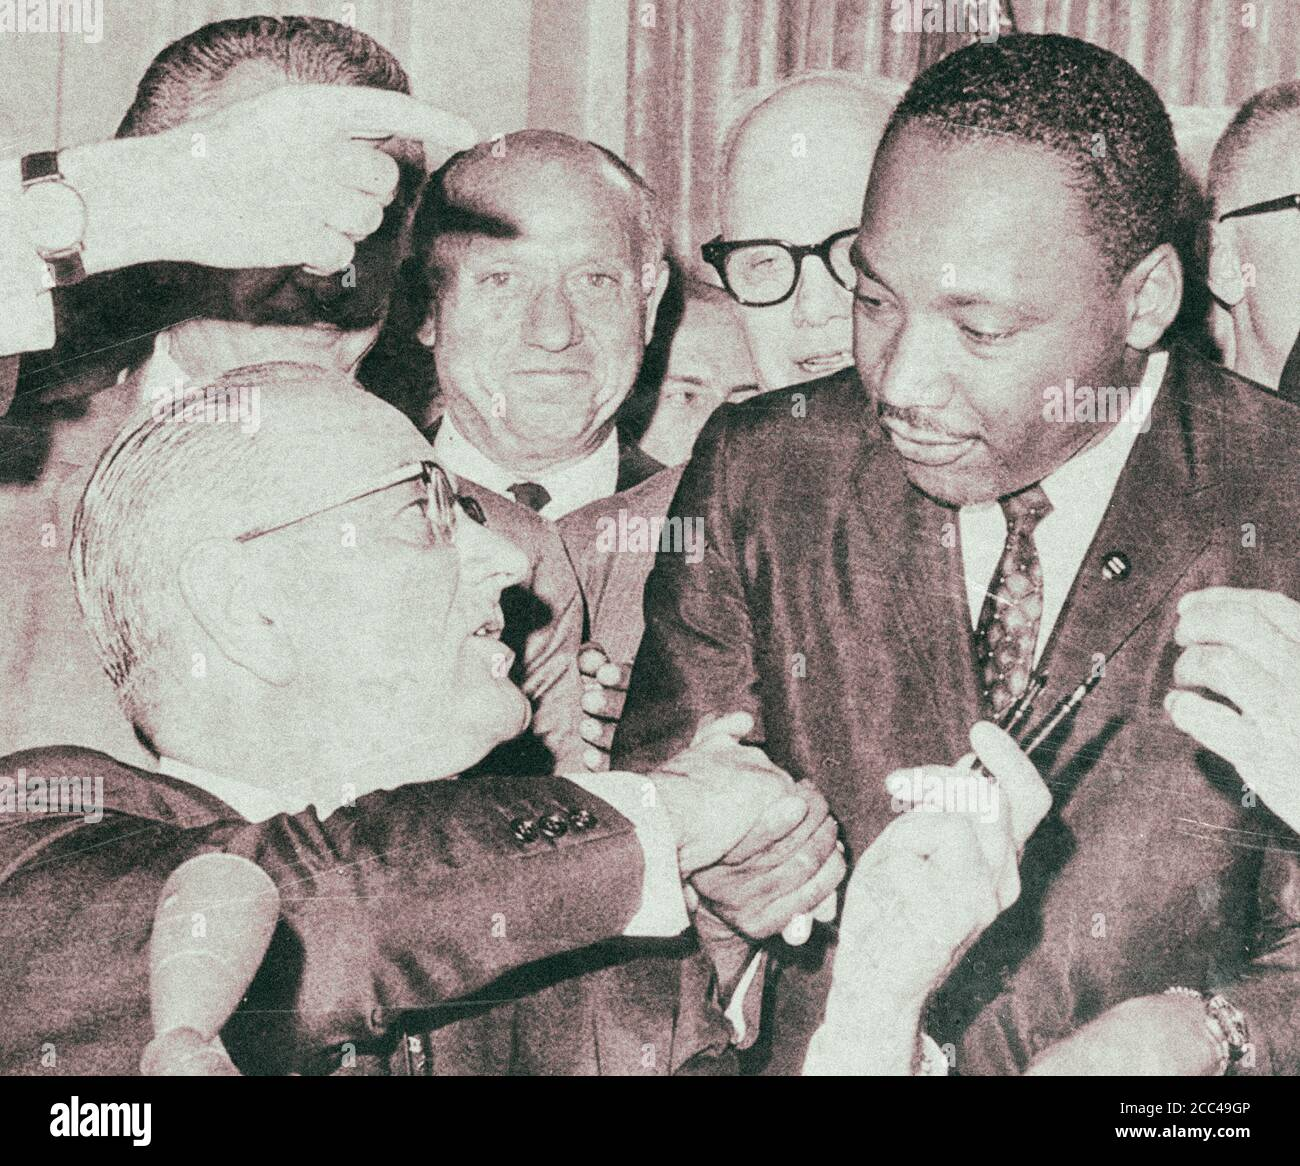 President Lyndon Johnson shakes hands with Reverend Martin Luther King, Jr., on July 3, 1964 in Washington, District of Columbia, after handing him a Stock Photo